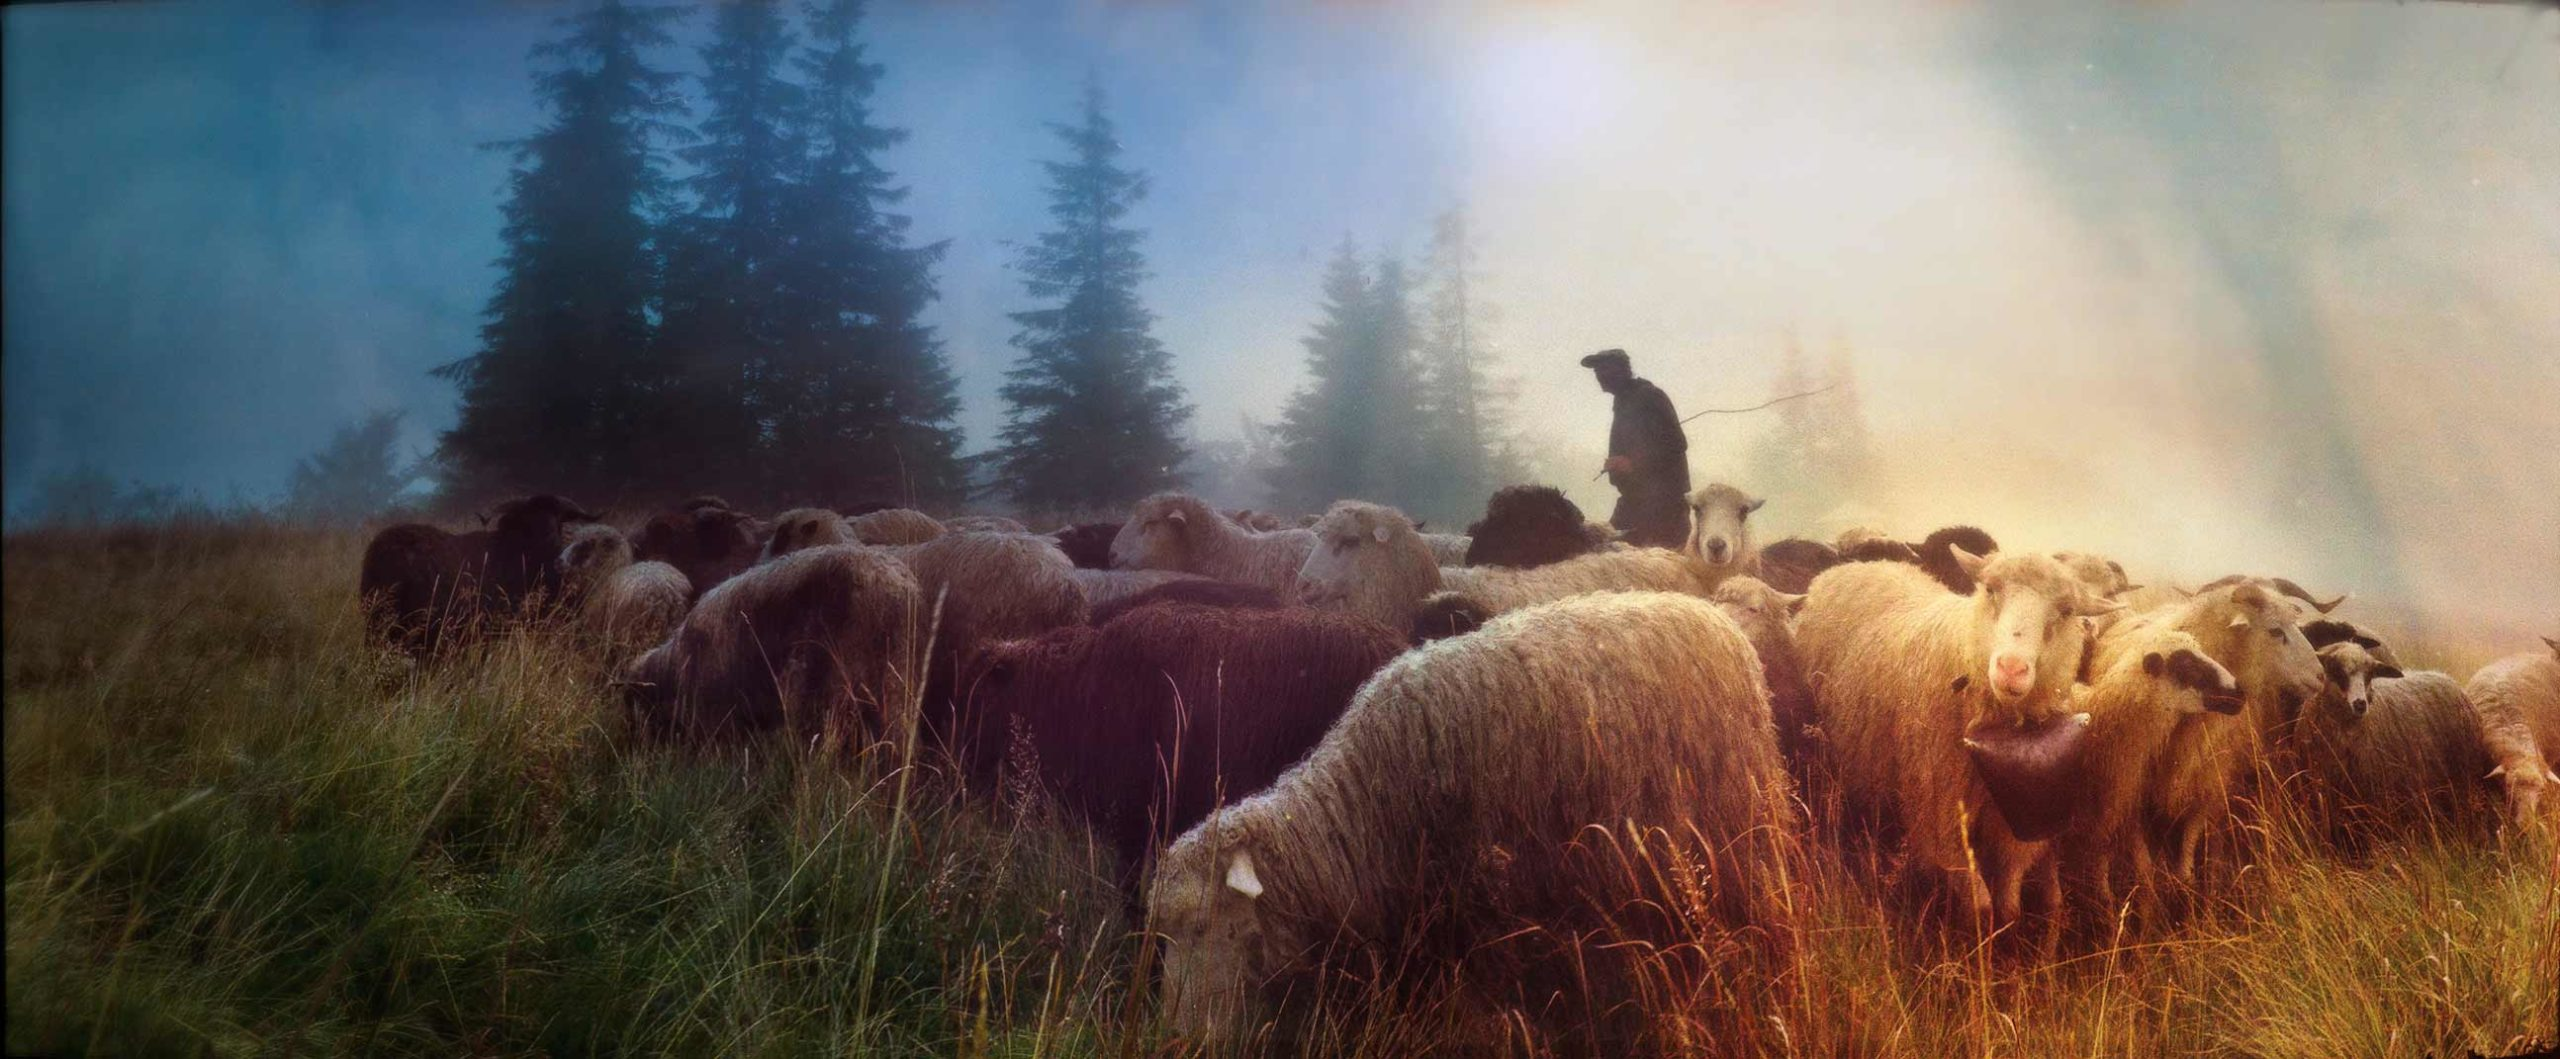 A man tends to his sheep in a field